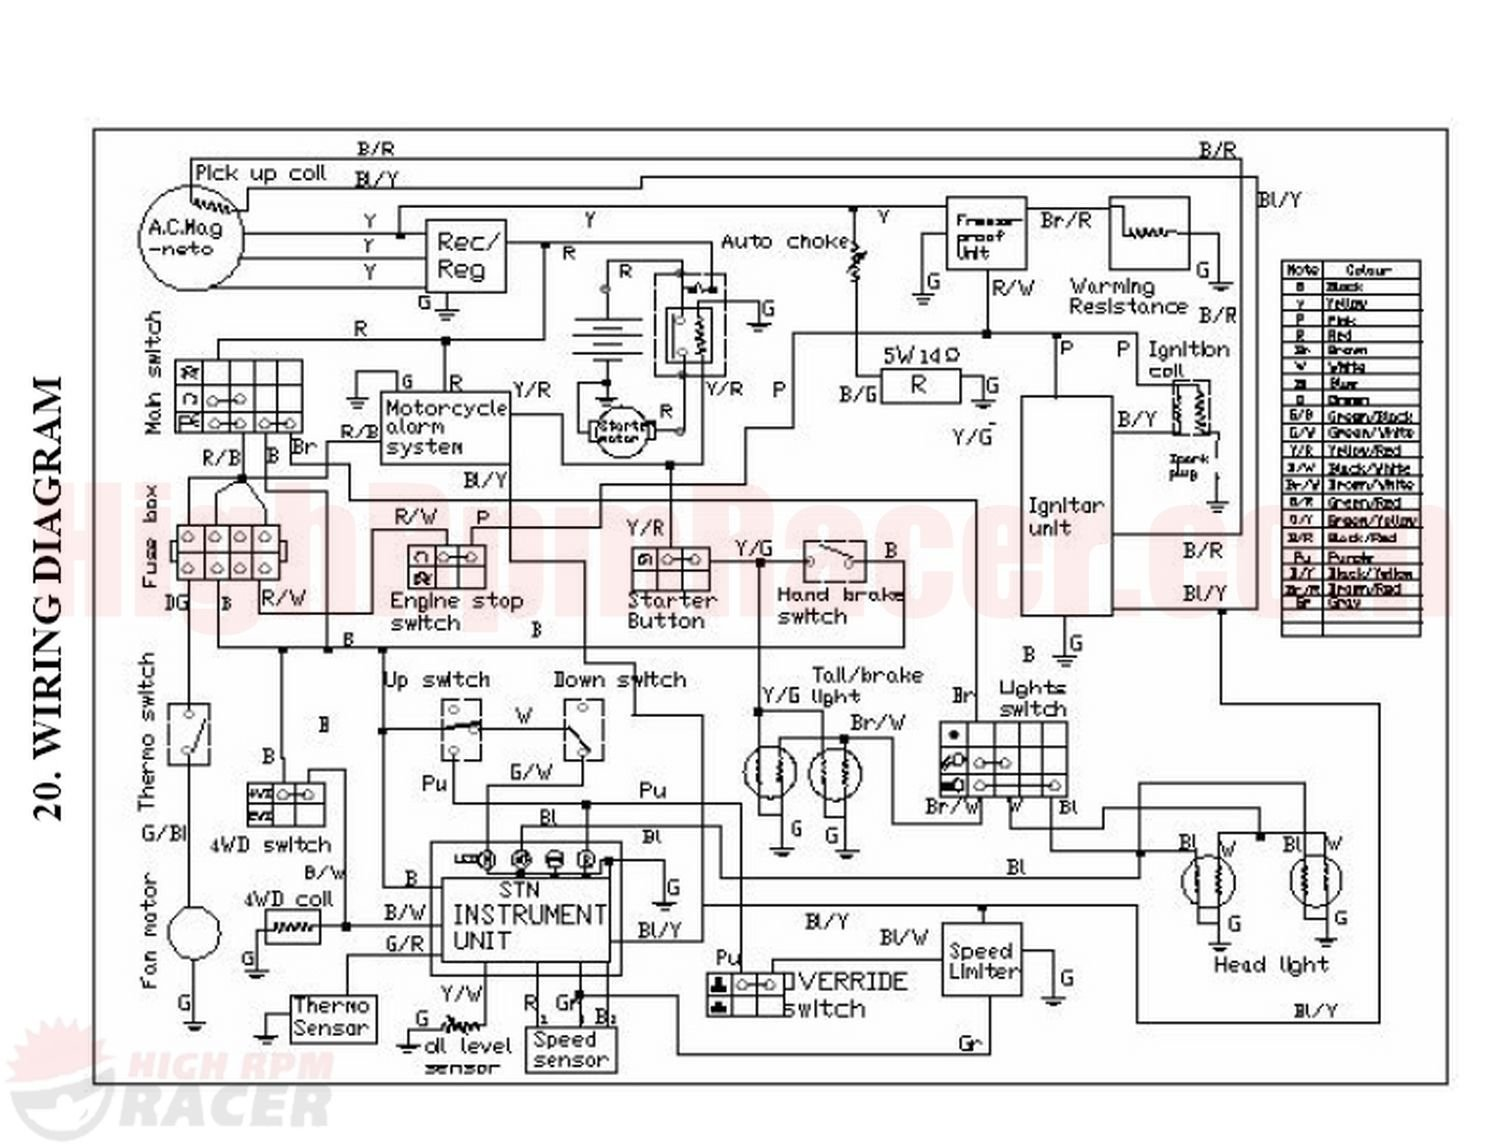 buyang300_wd buyang atv 300 wiring diagram $0 00 atv wiring diagram at readyjetset.co